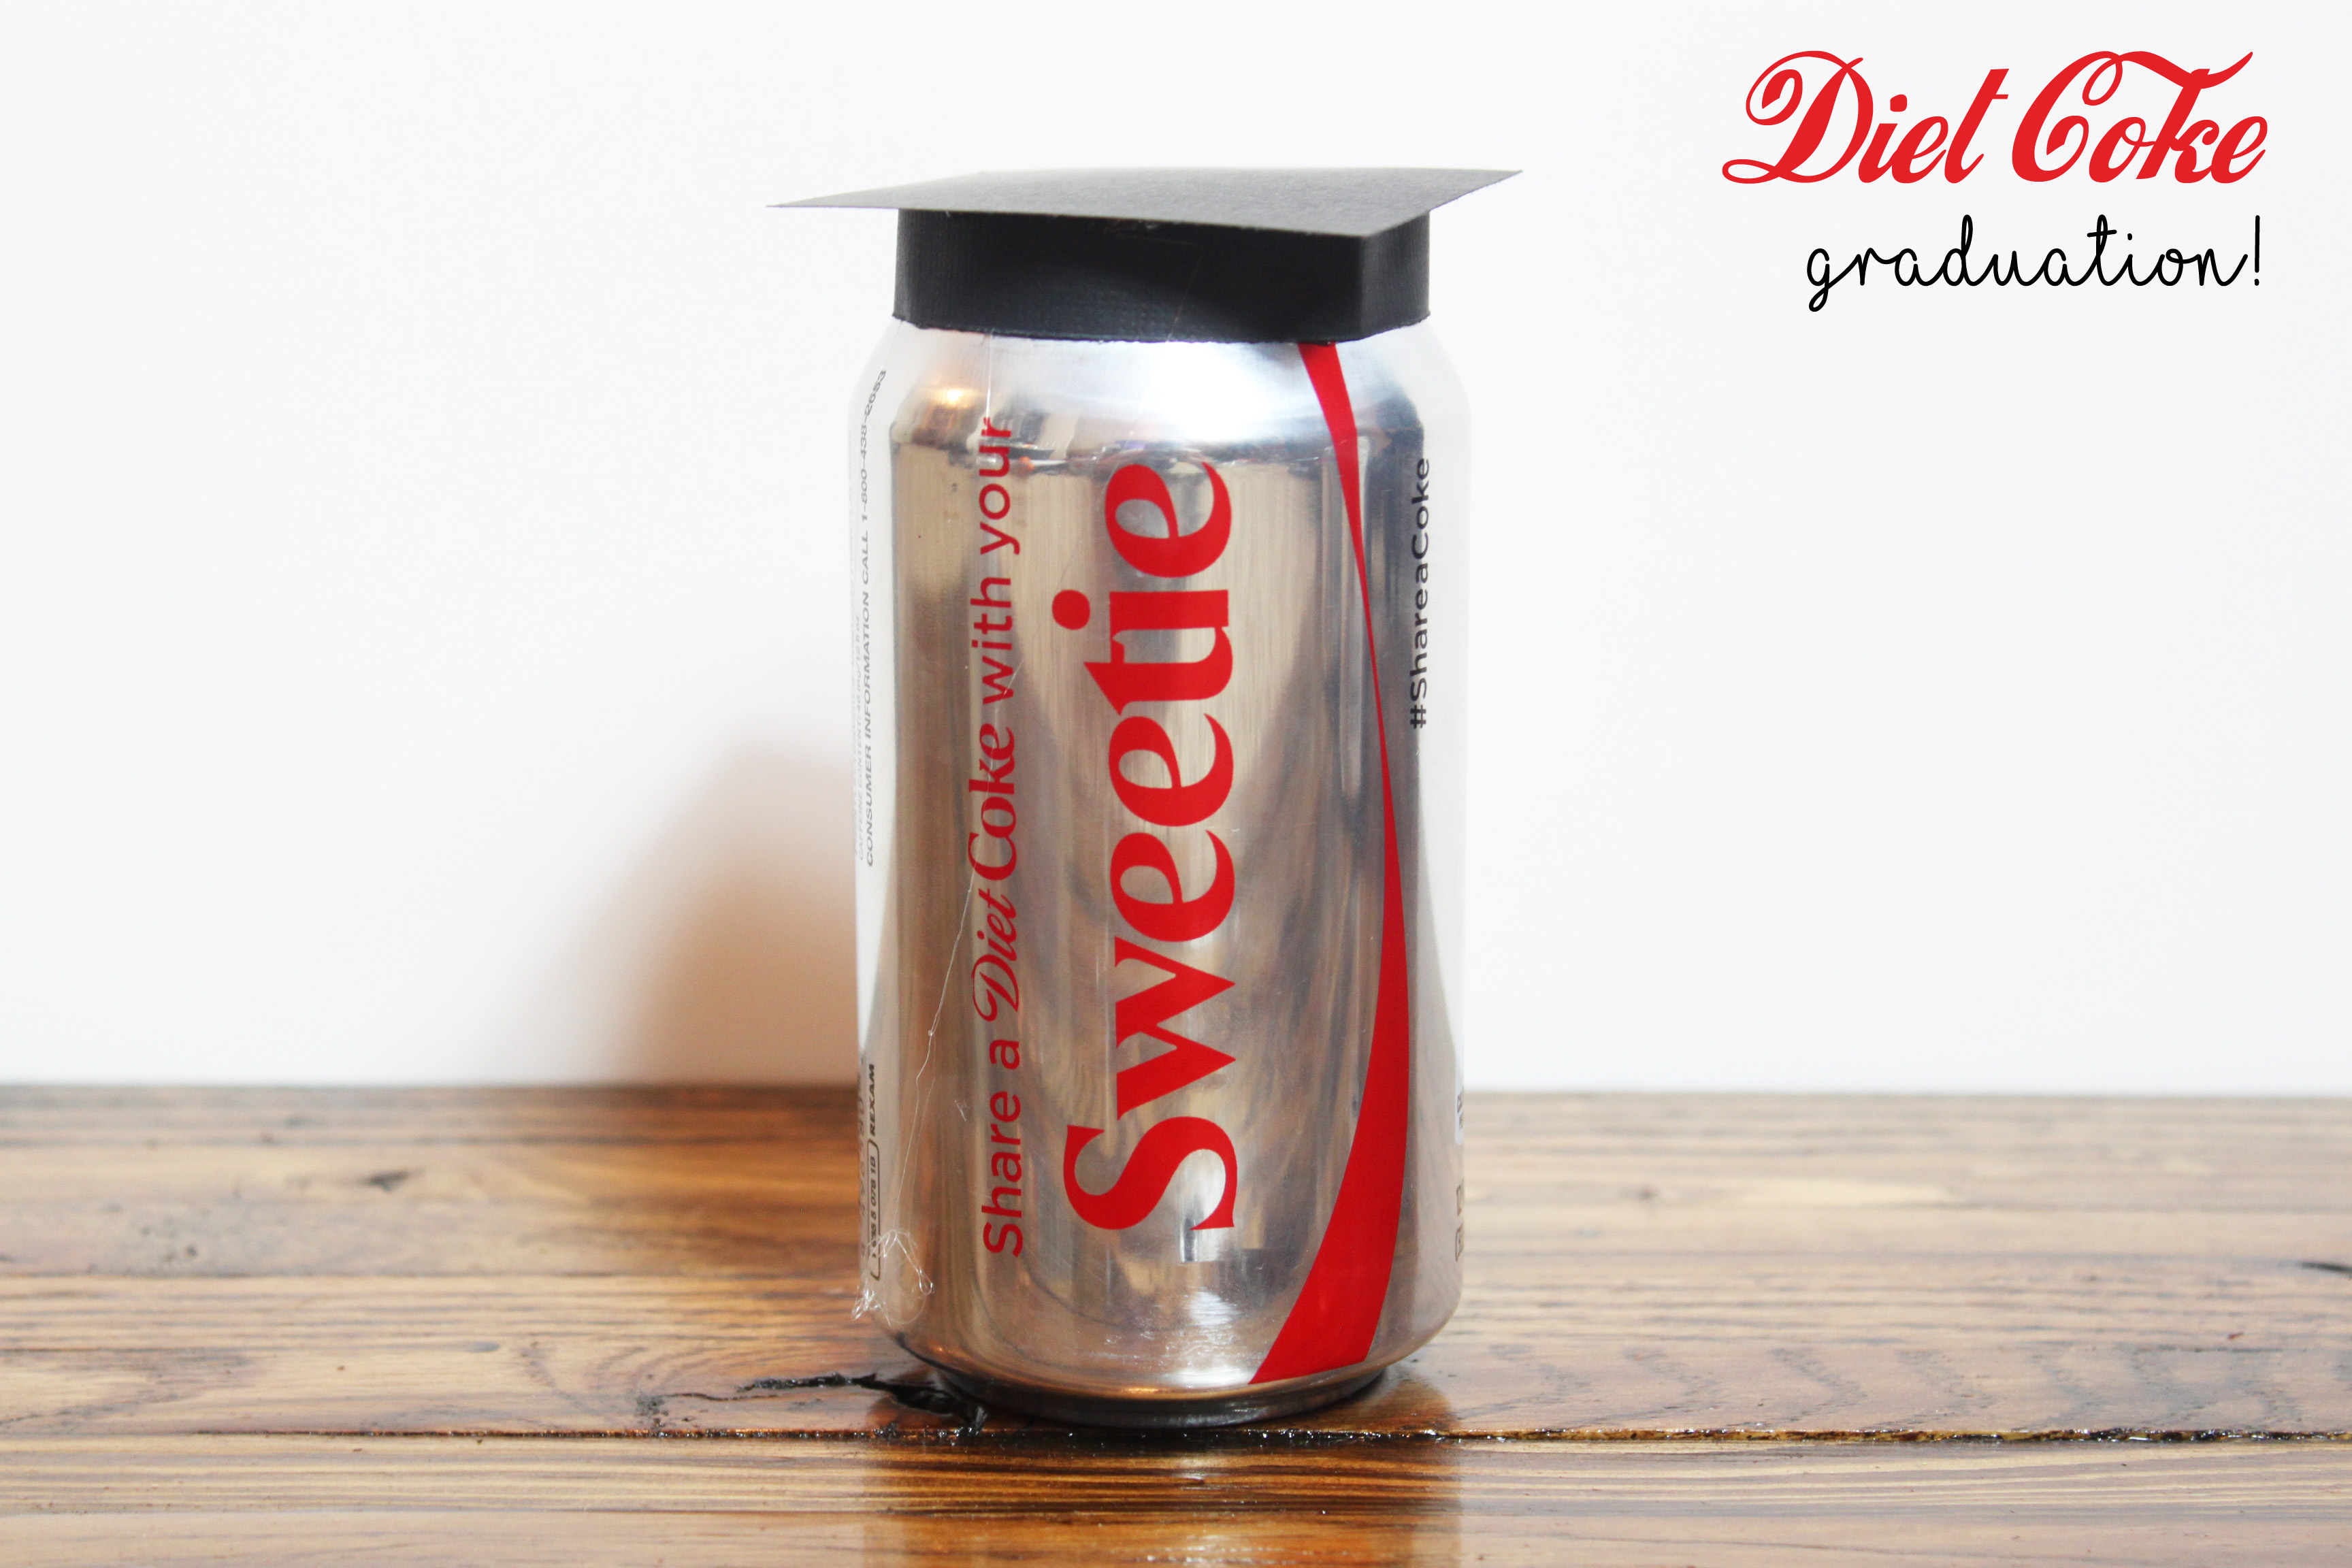 Diet Coke New Graduation 2